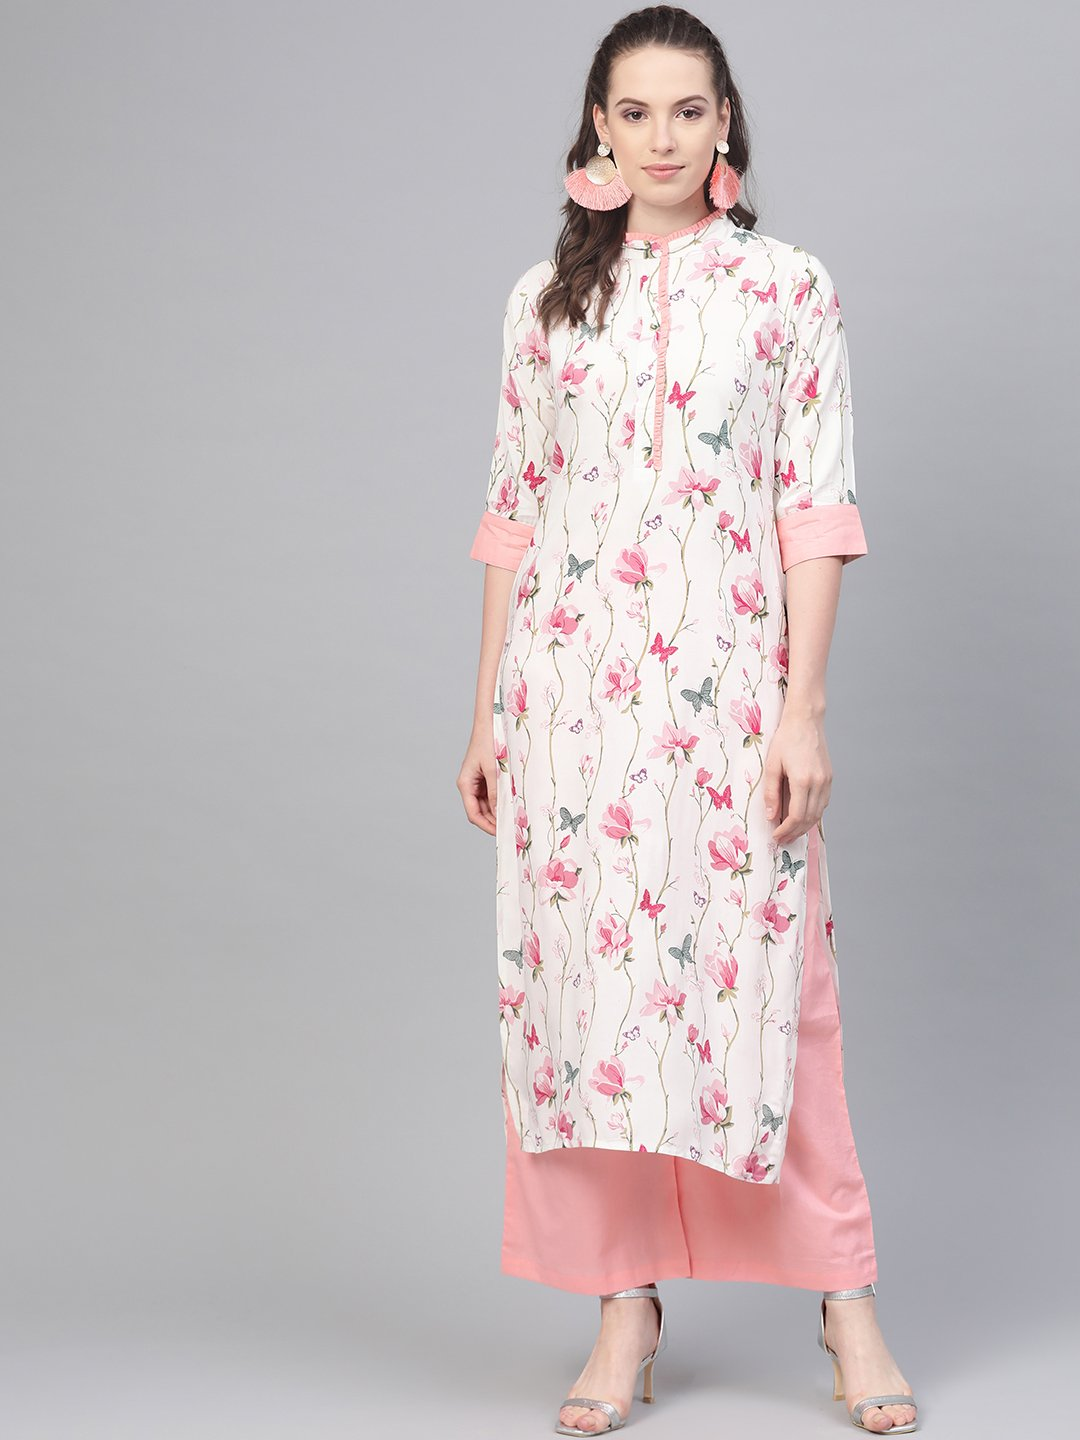 Off white multi colored floral kurta with collar and placket detailing with solid light pink pallazos